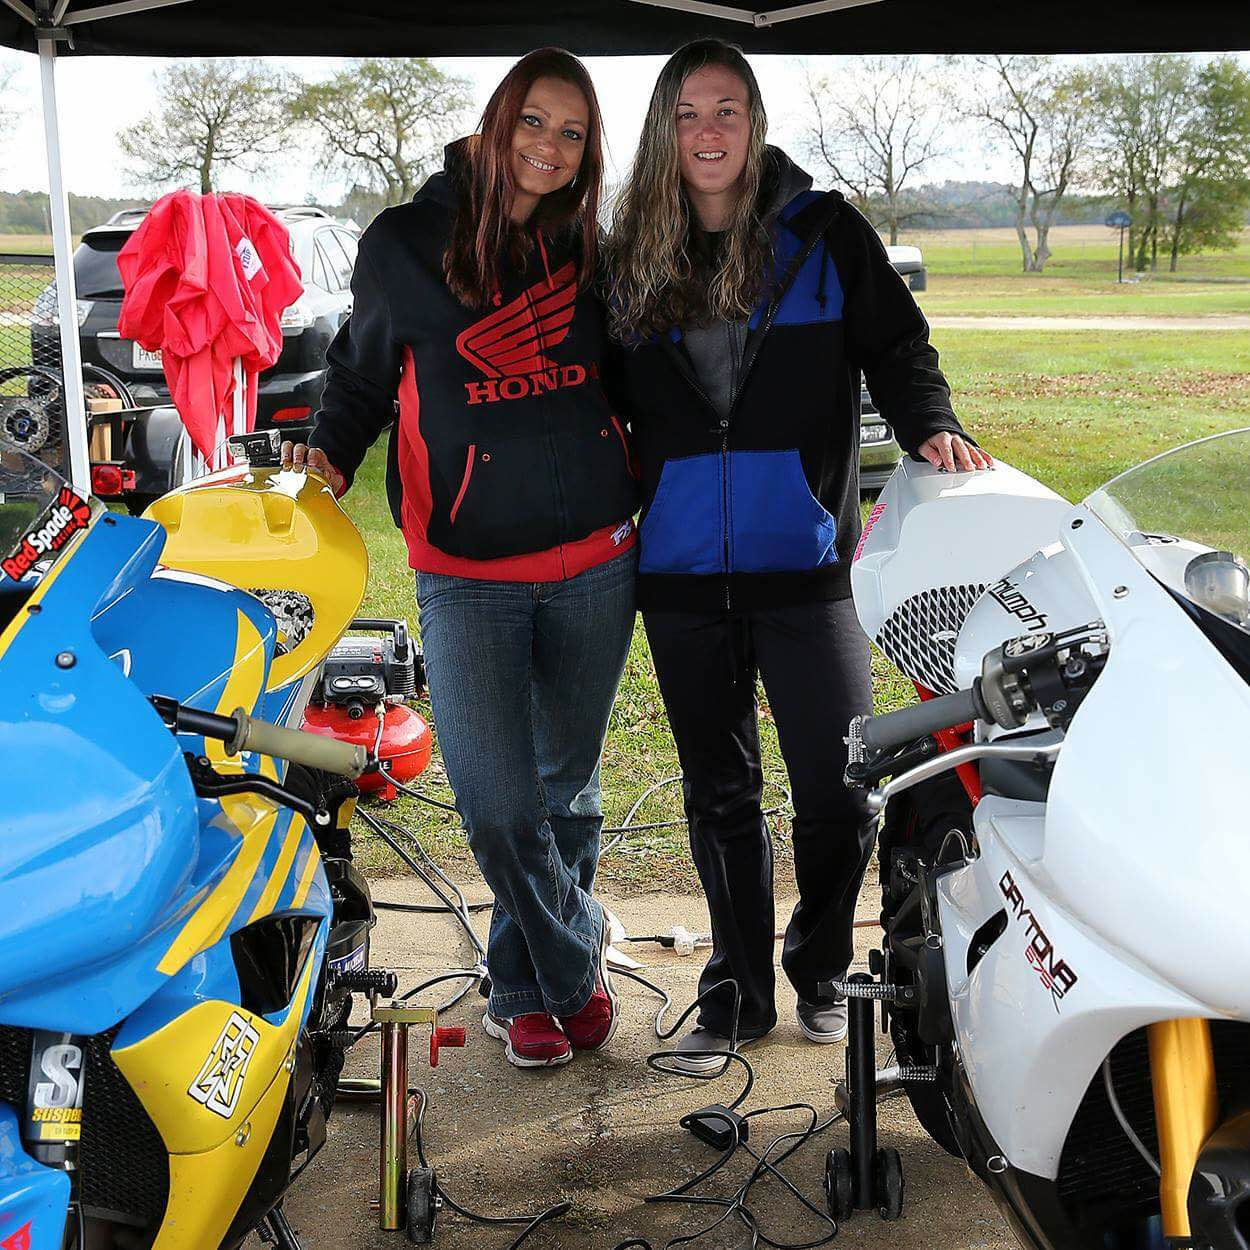 I never really considered doing an all ladies trackday event, but after attending the Ladies First day with STGirl I absolutely fell in love! I really got to hone my skills in a welcoming and fun environment with my fellow females. Getting to meet so many awesome women that share the same passion was incredible and now I'm hooked!